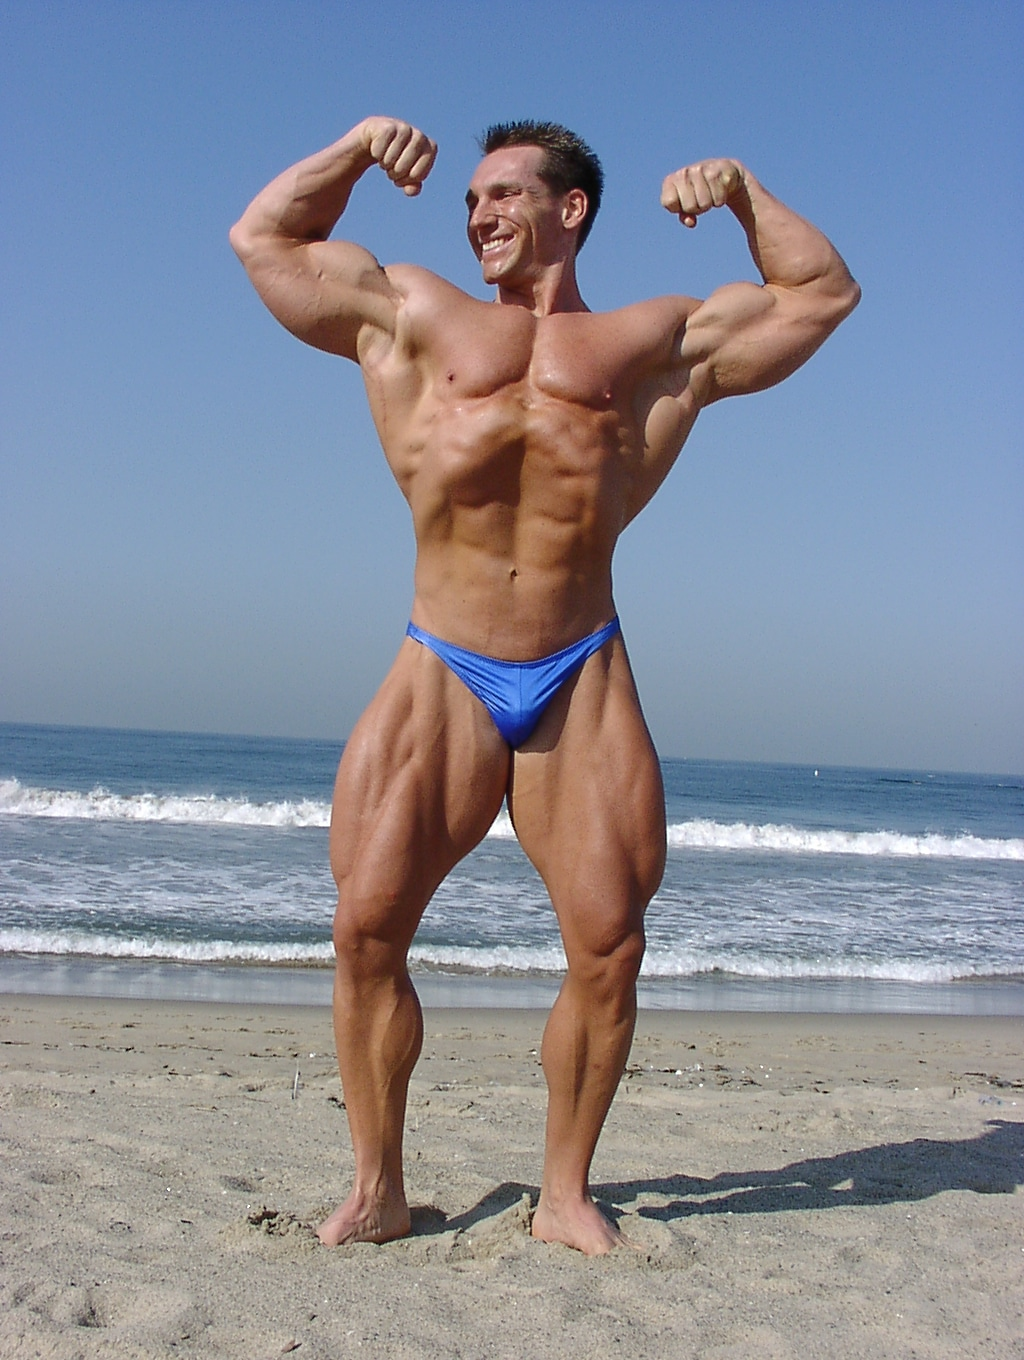 bodybuilder front double biceps pose on beach